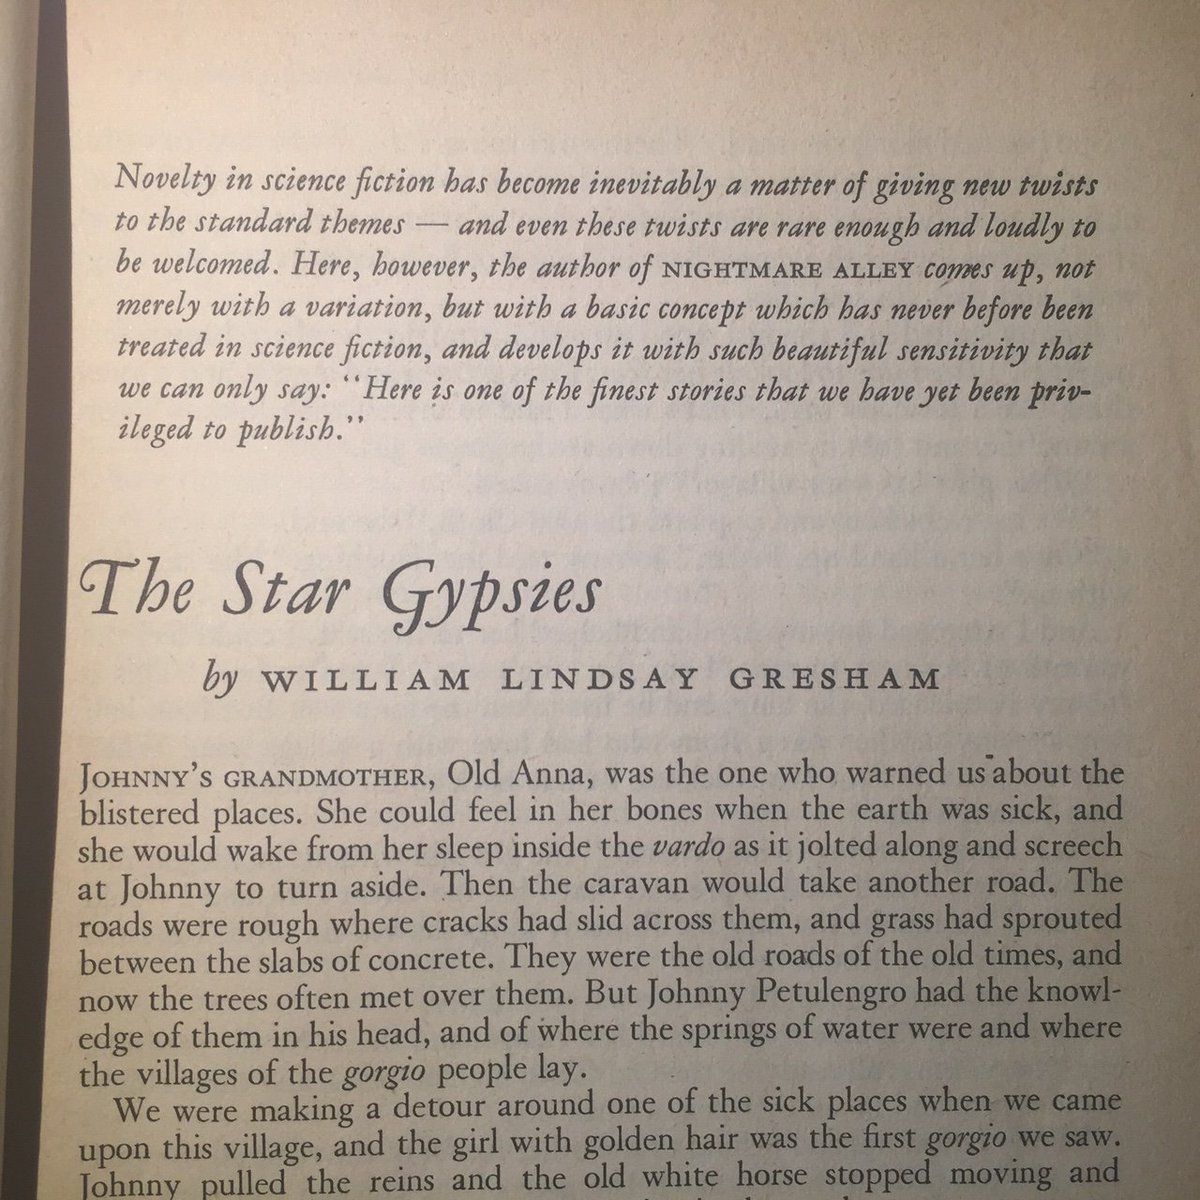 Introduction to The Star Gypsies from F&SF July 1953